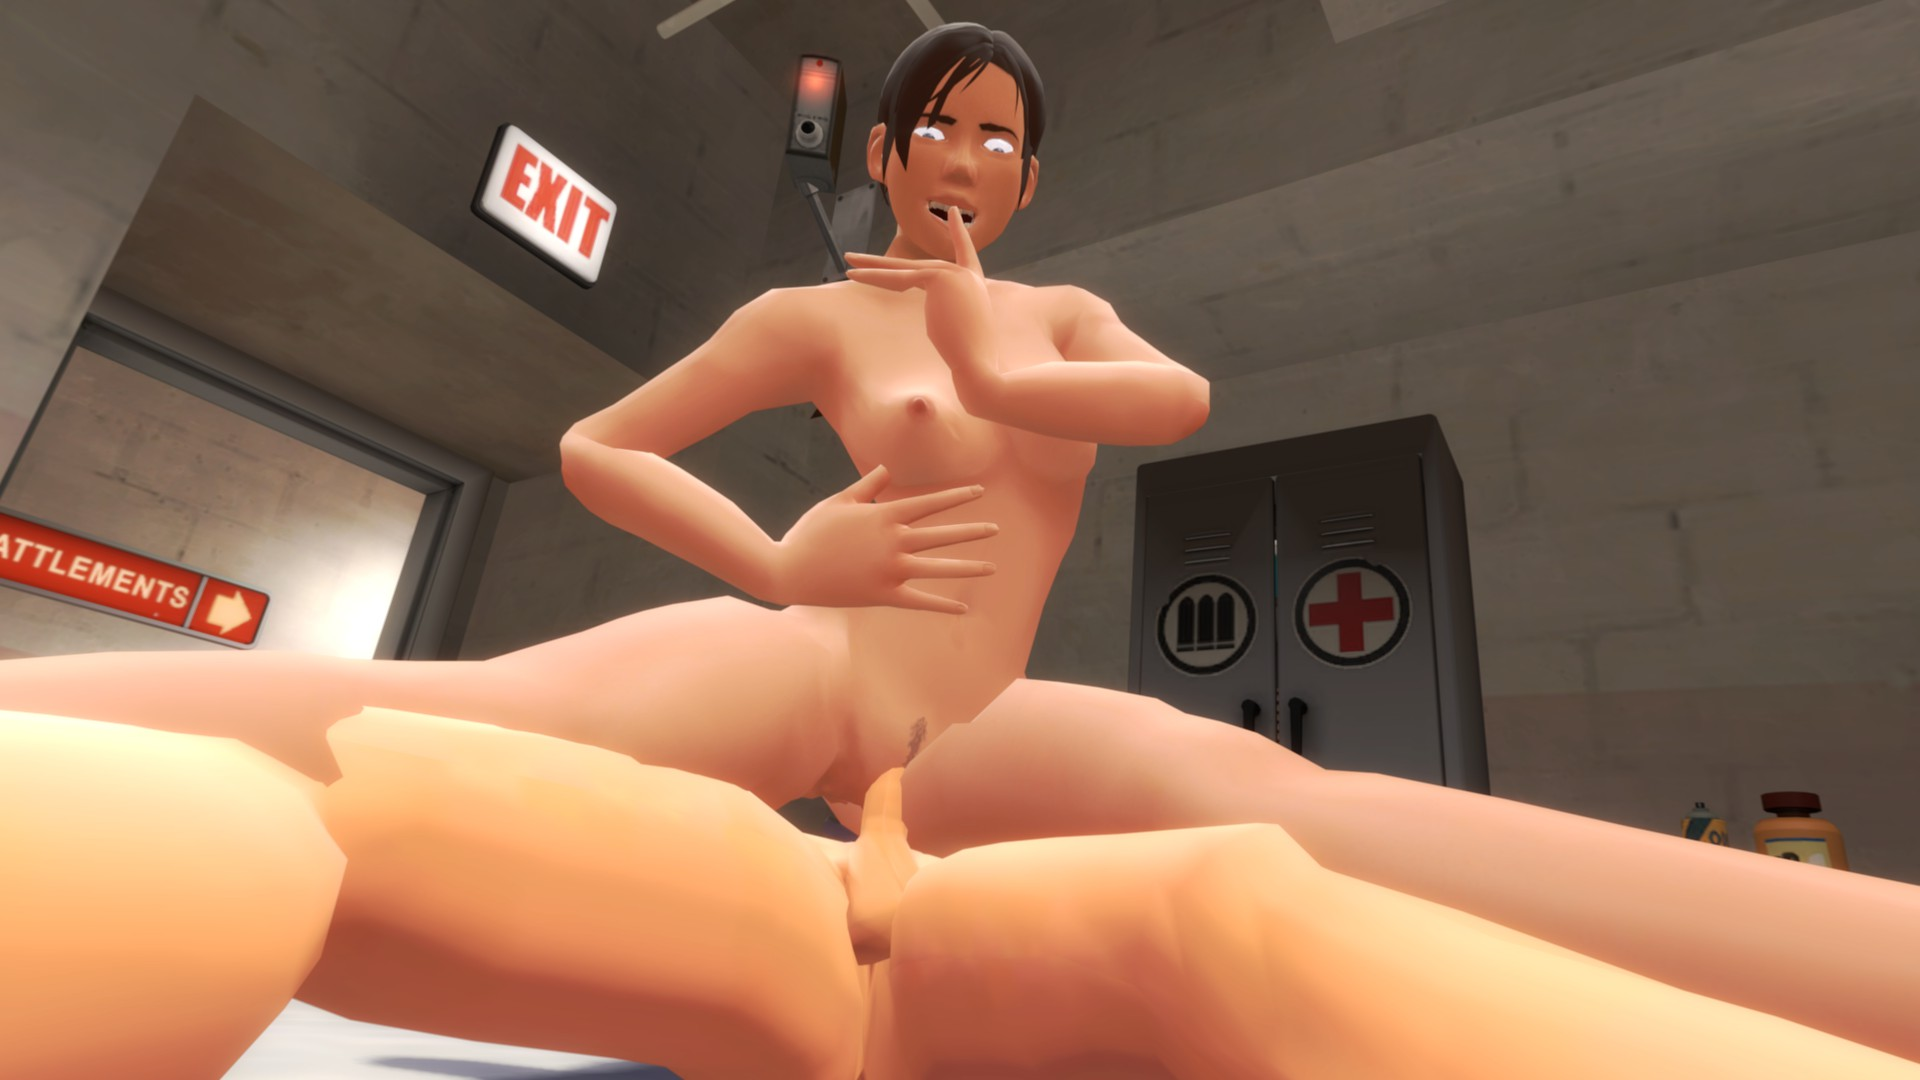 Gmod girls nude video sexy image